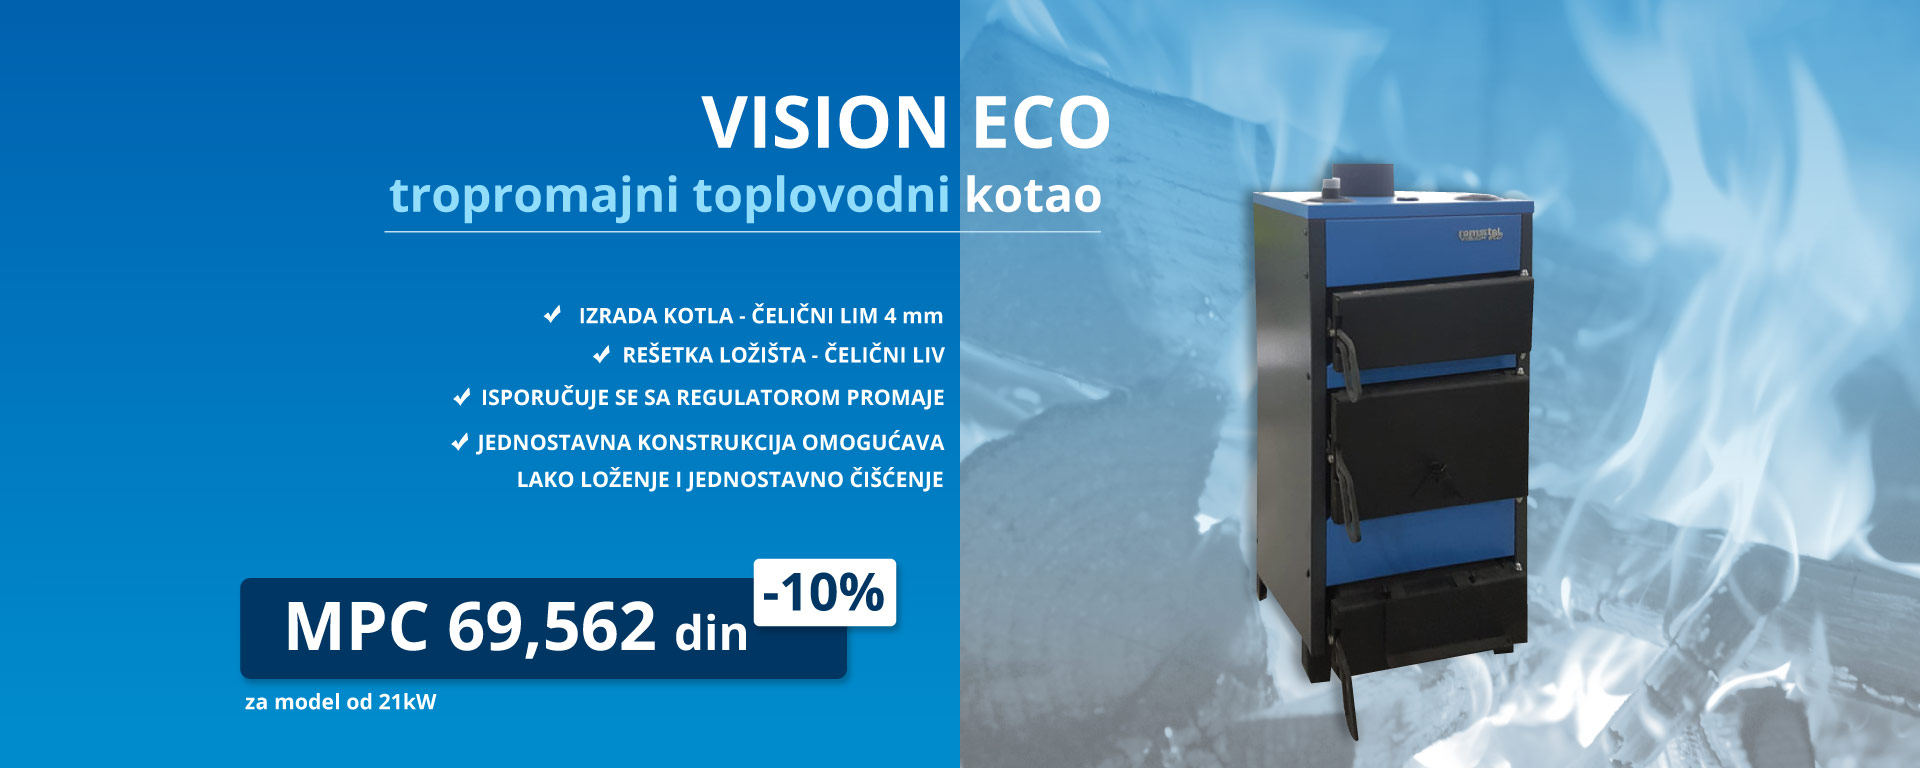 VISION ECO